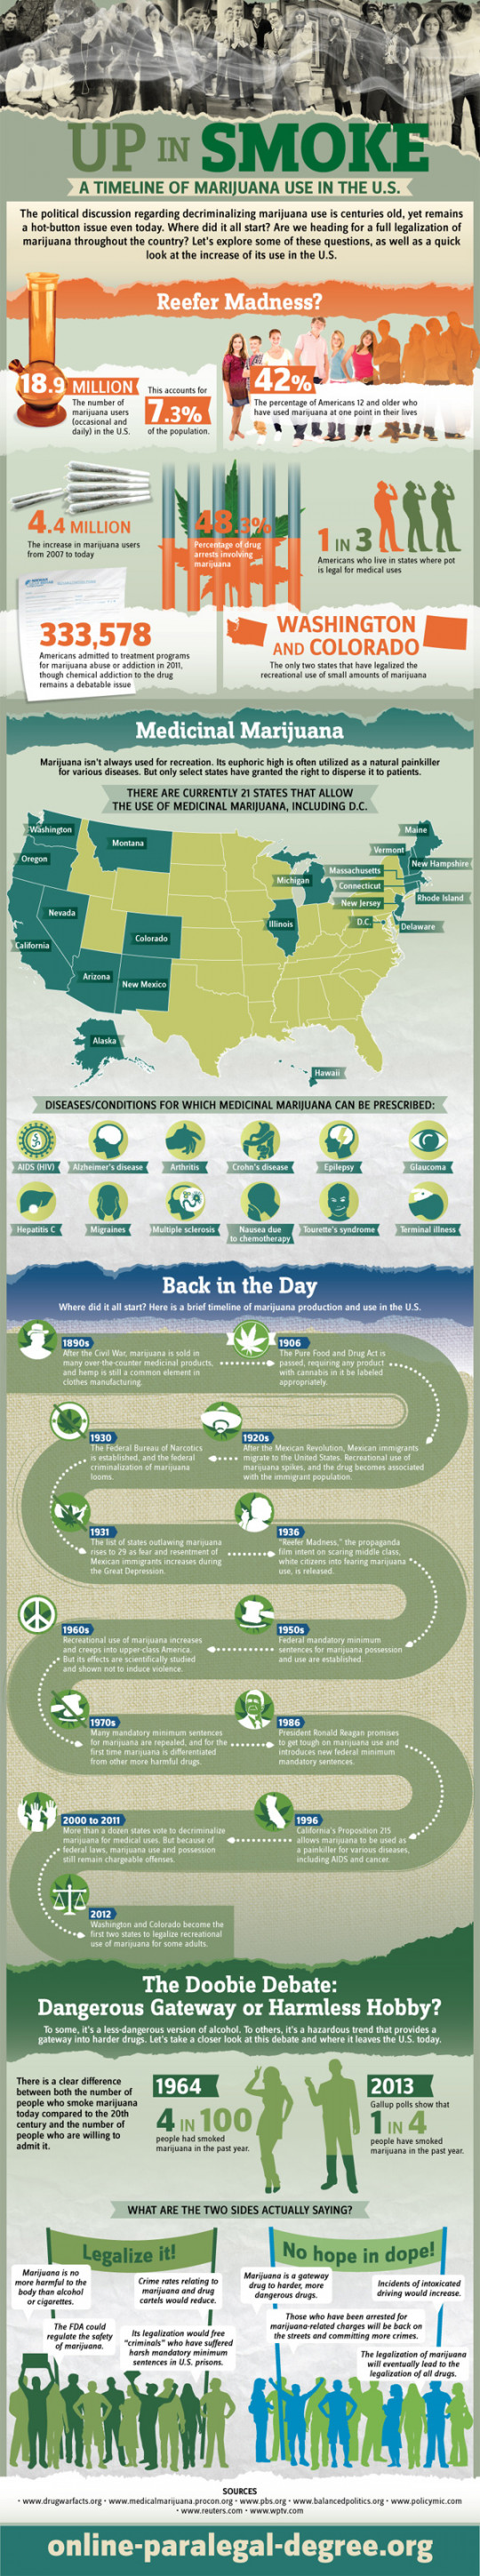 Up in Smoke: A Timeline of Marijuana Use in the U.S.